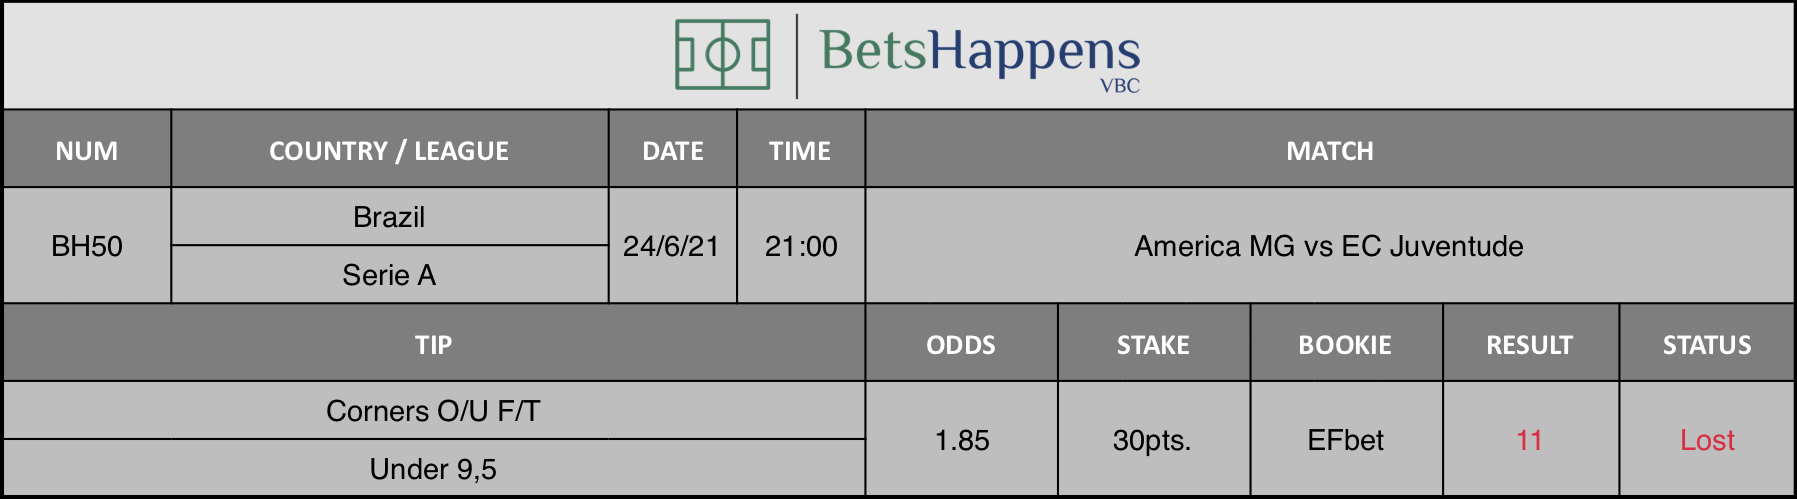 Results of our tip for the America MG vs EC Juventude match Corners O/U F/T Under 9,5 is recommended.